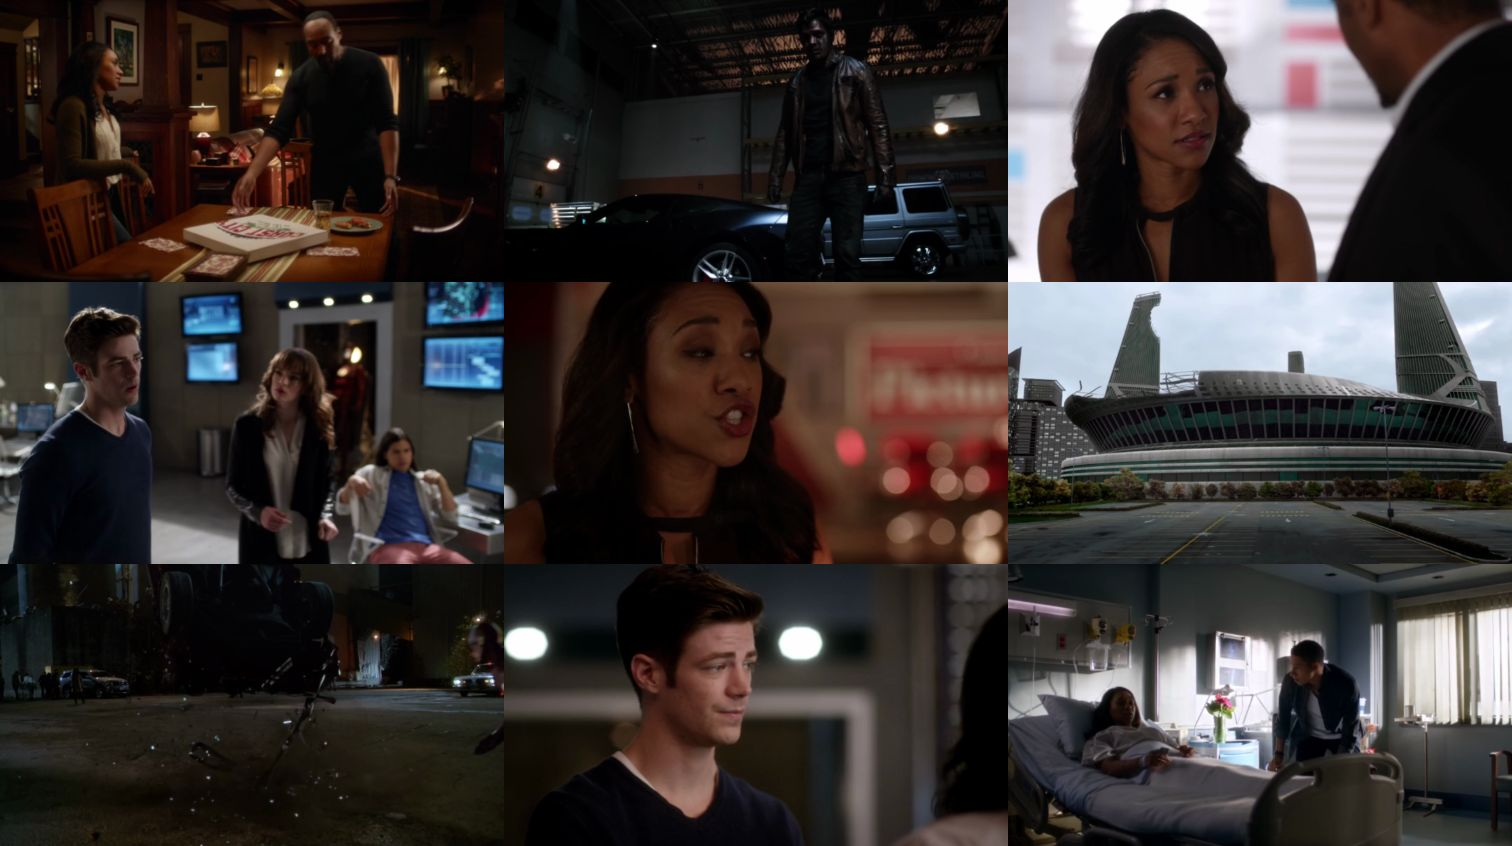 The Flash 2014 S02E12 720p HDTV X264-DIMENSION